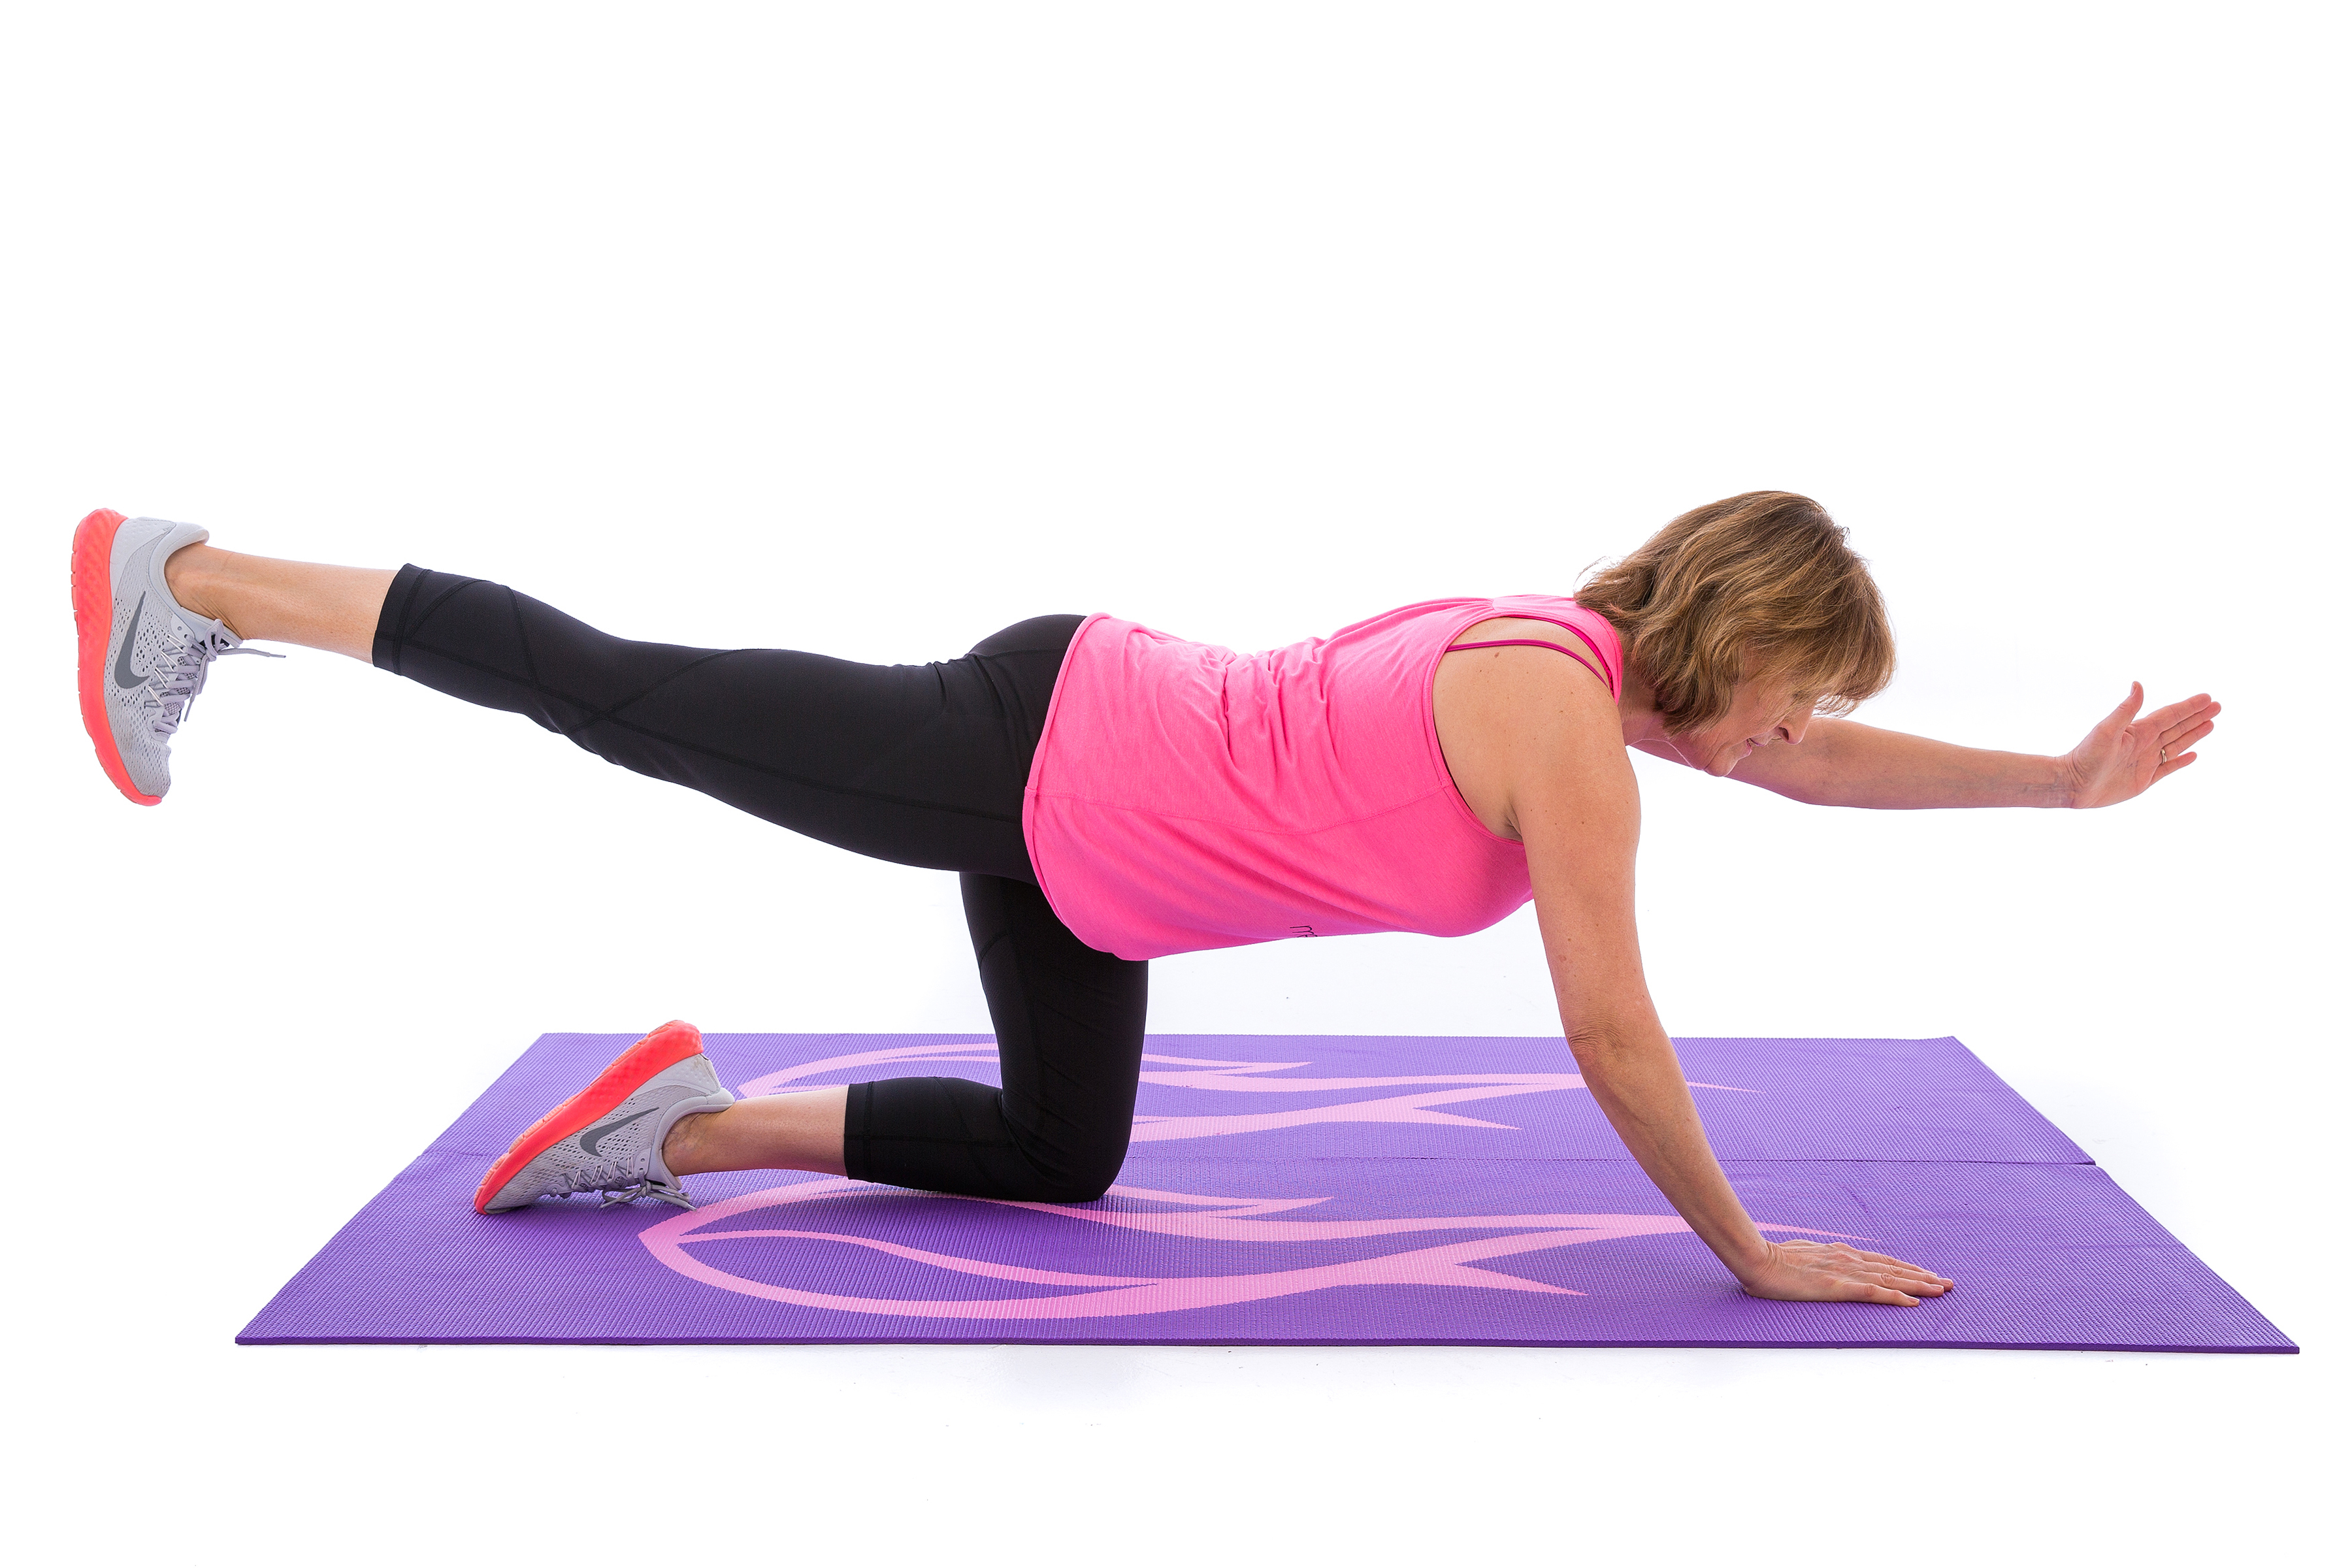 The 10-Minute Workout That Will Help Beat Symptoms Of The Menopause